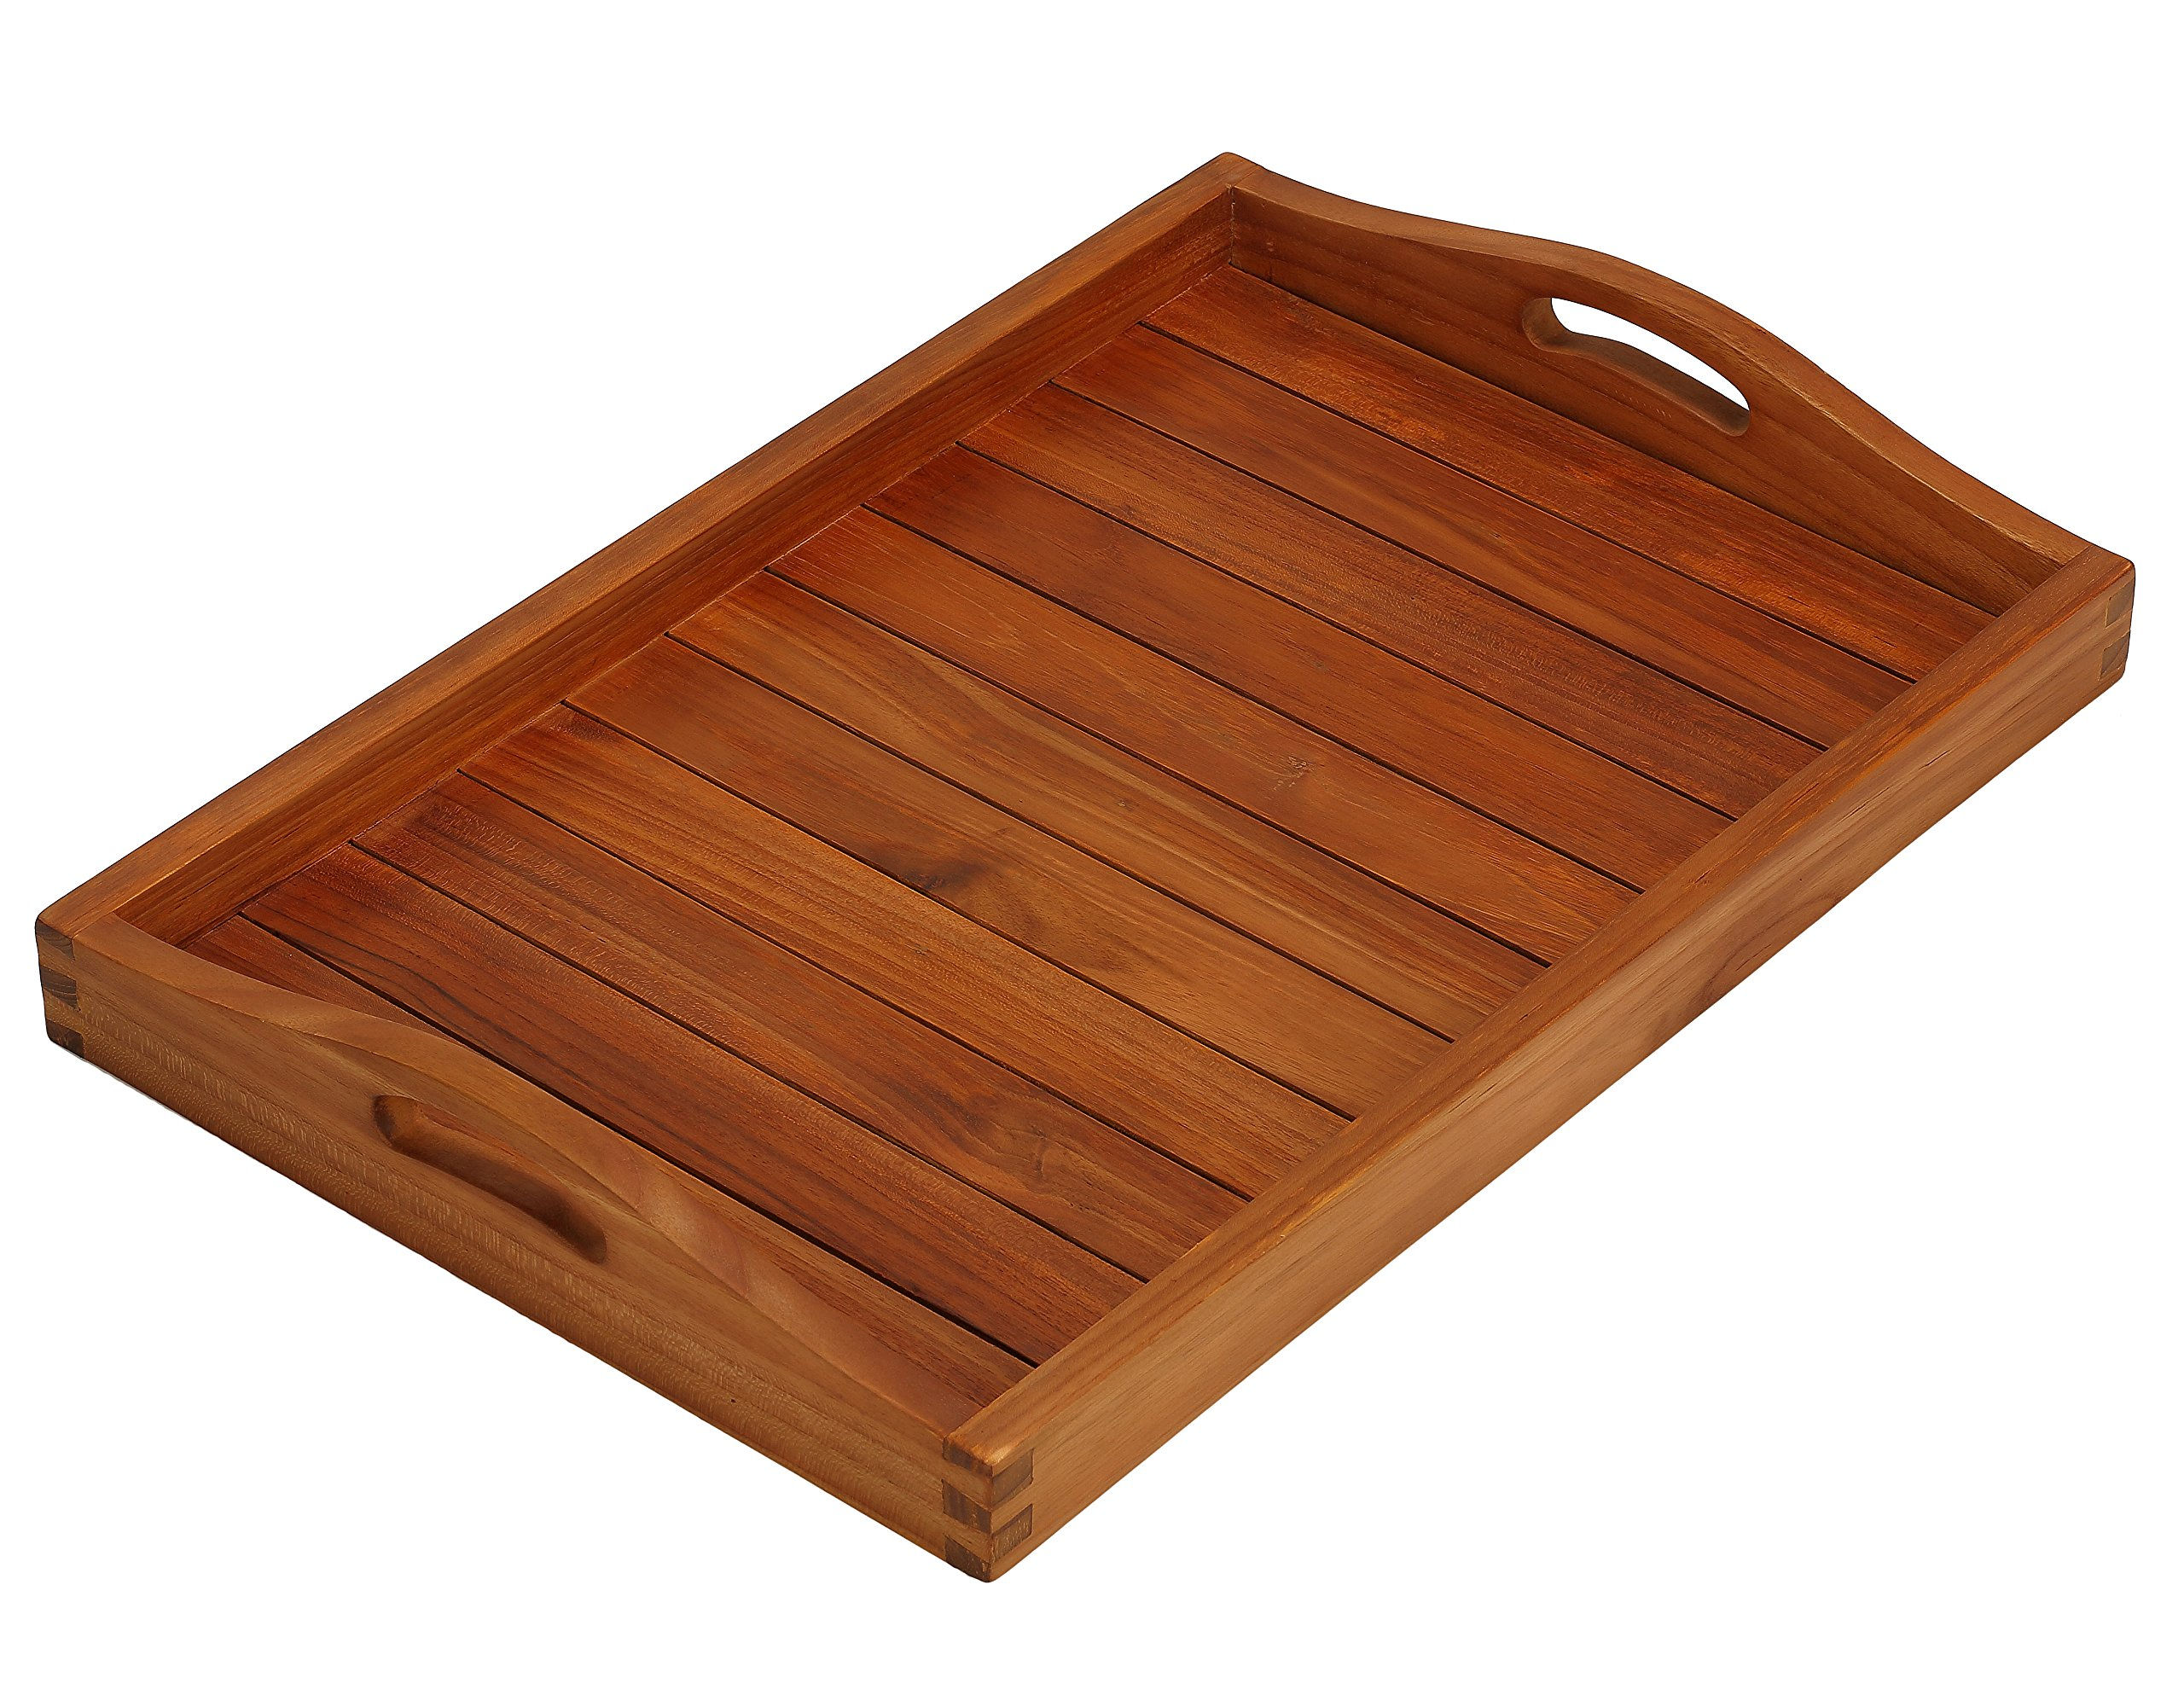 Bare Decor Vivi Spa/Serving Tray in Solid Teak Wood